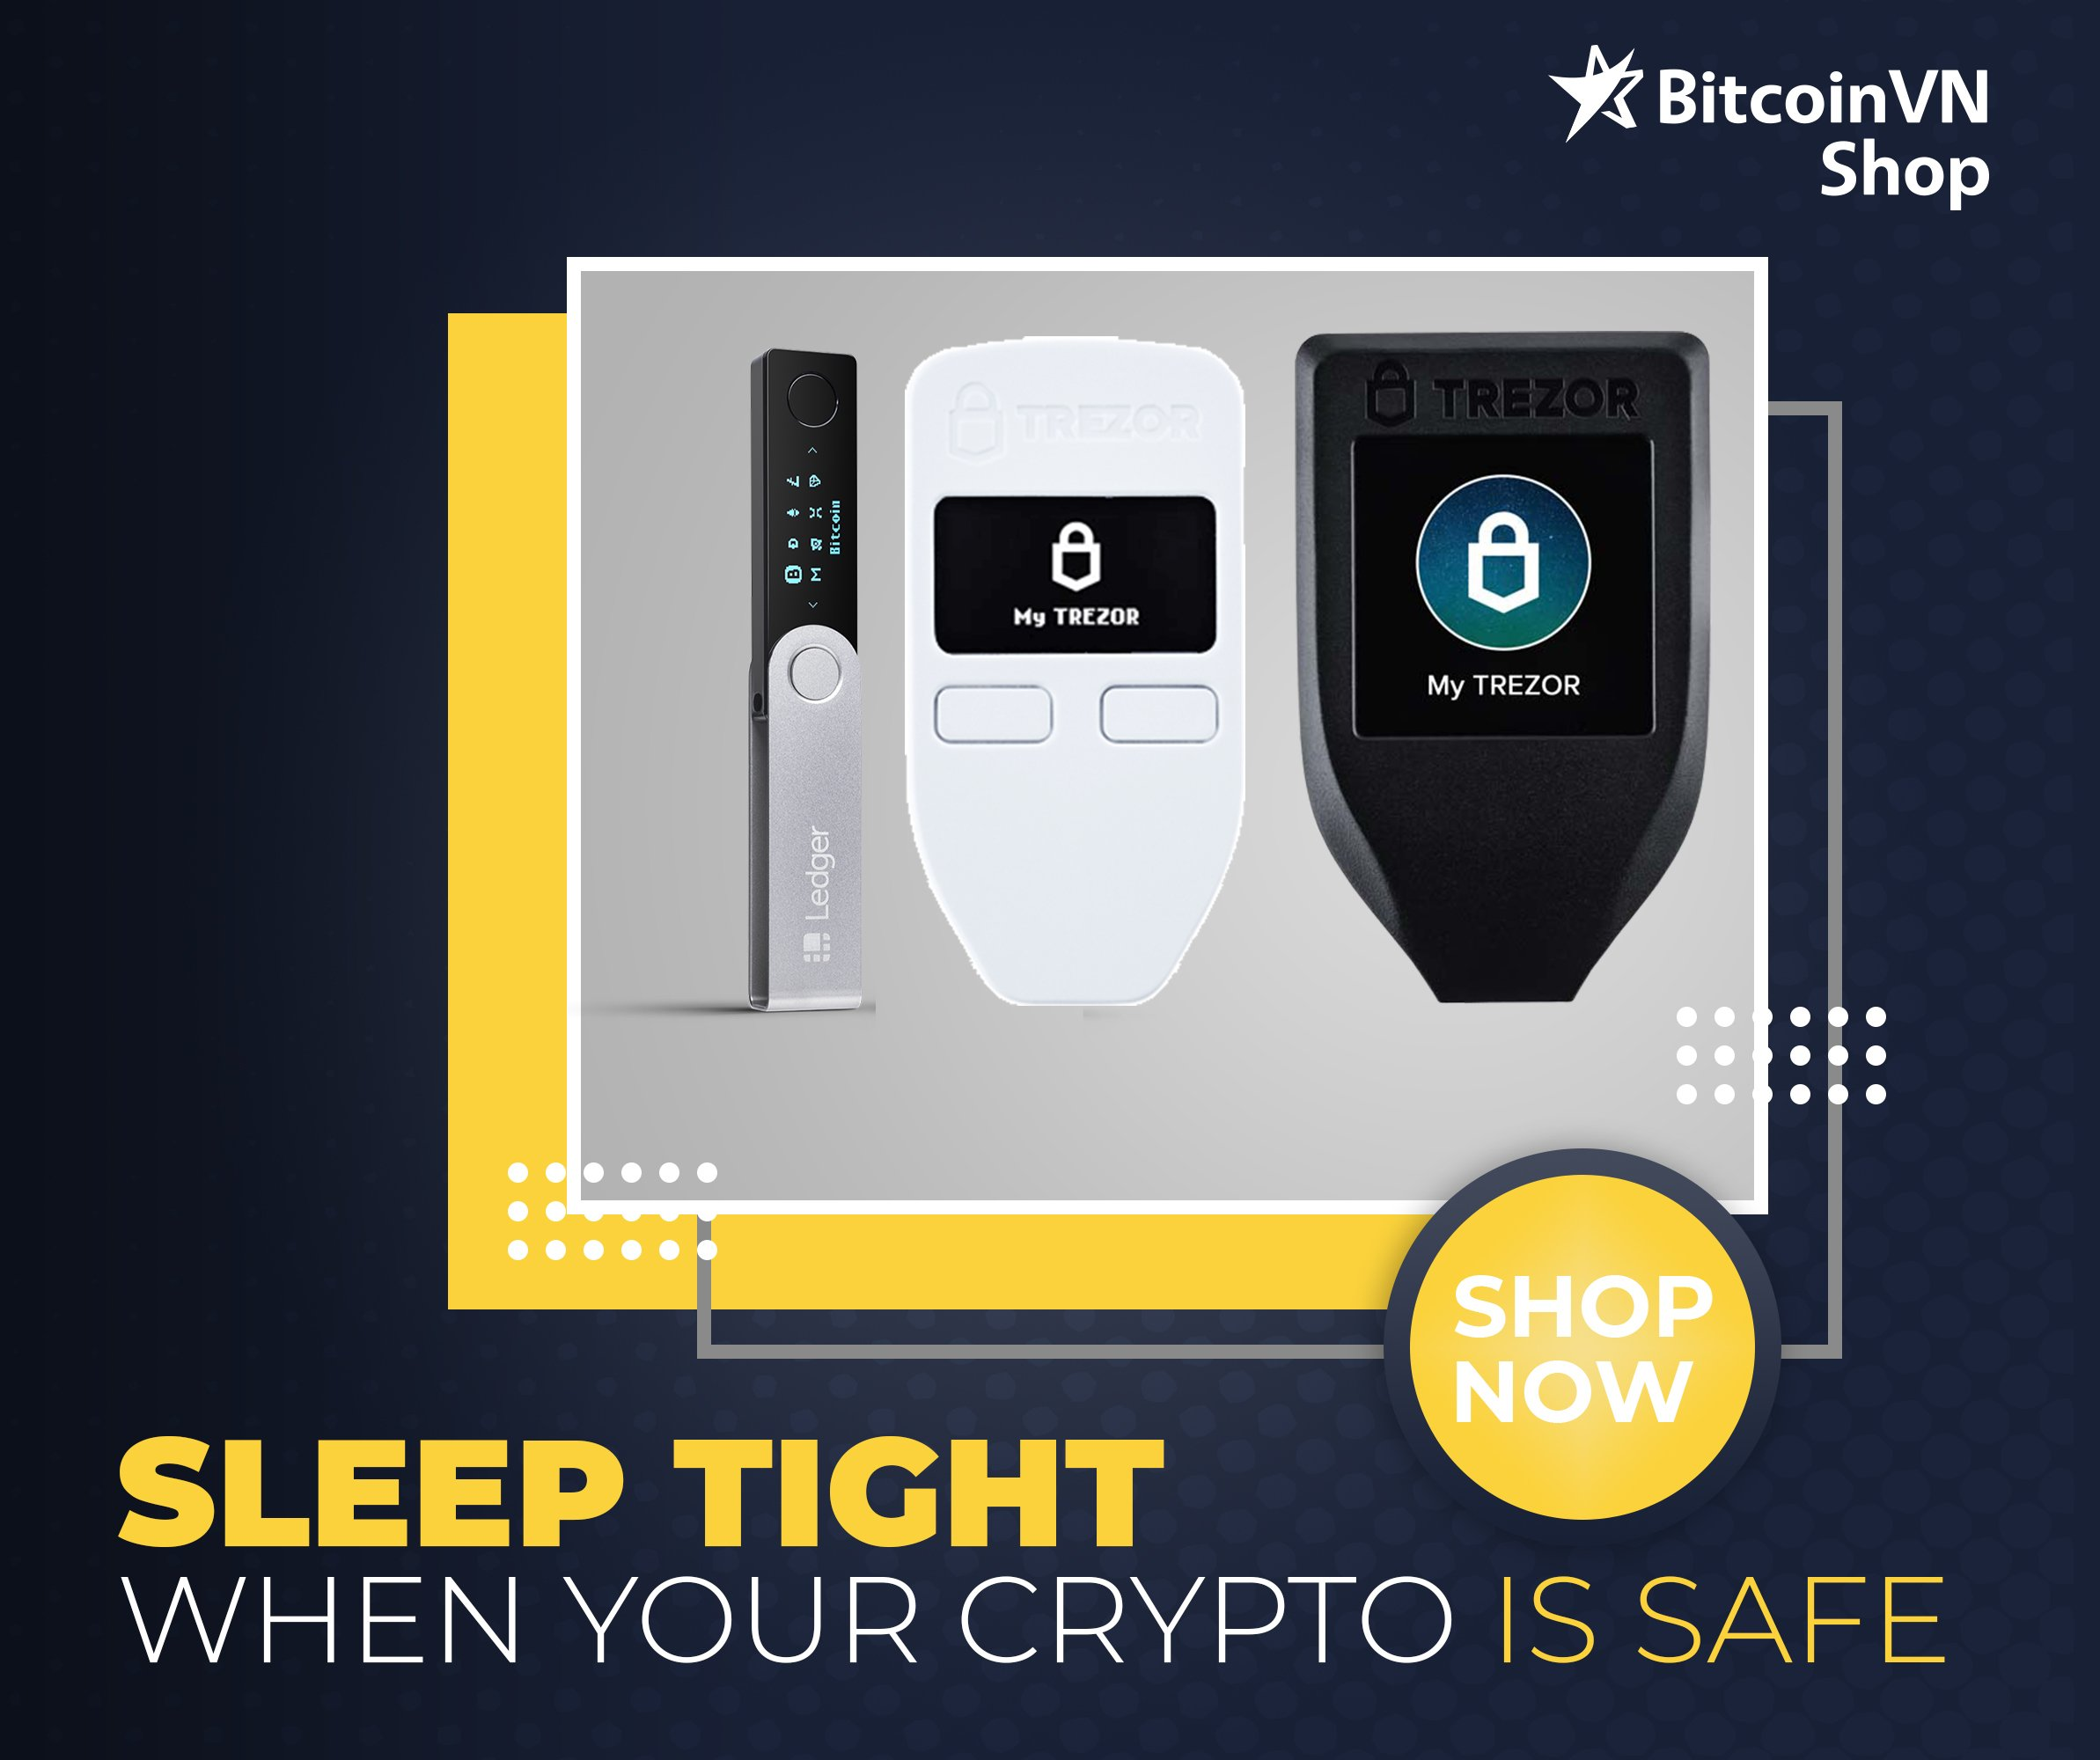 Sleep tight with hard wallets from BVShop!